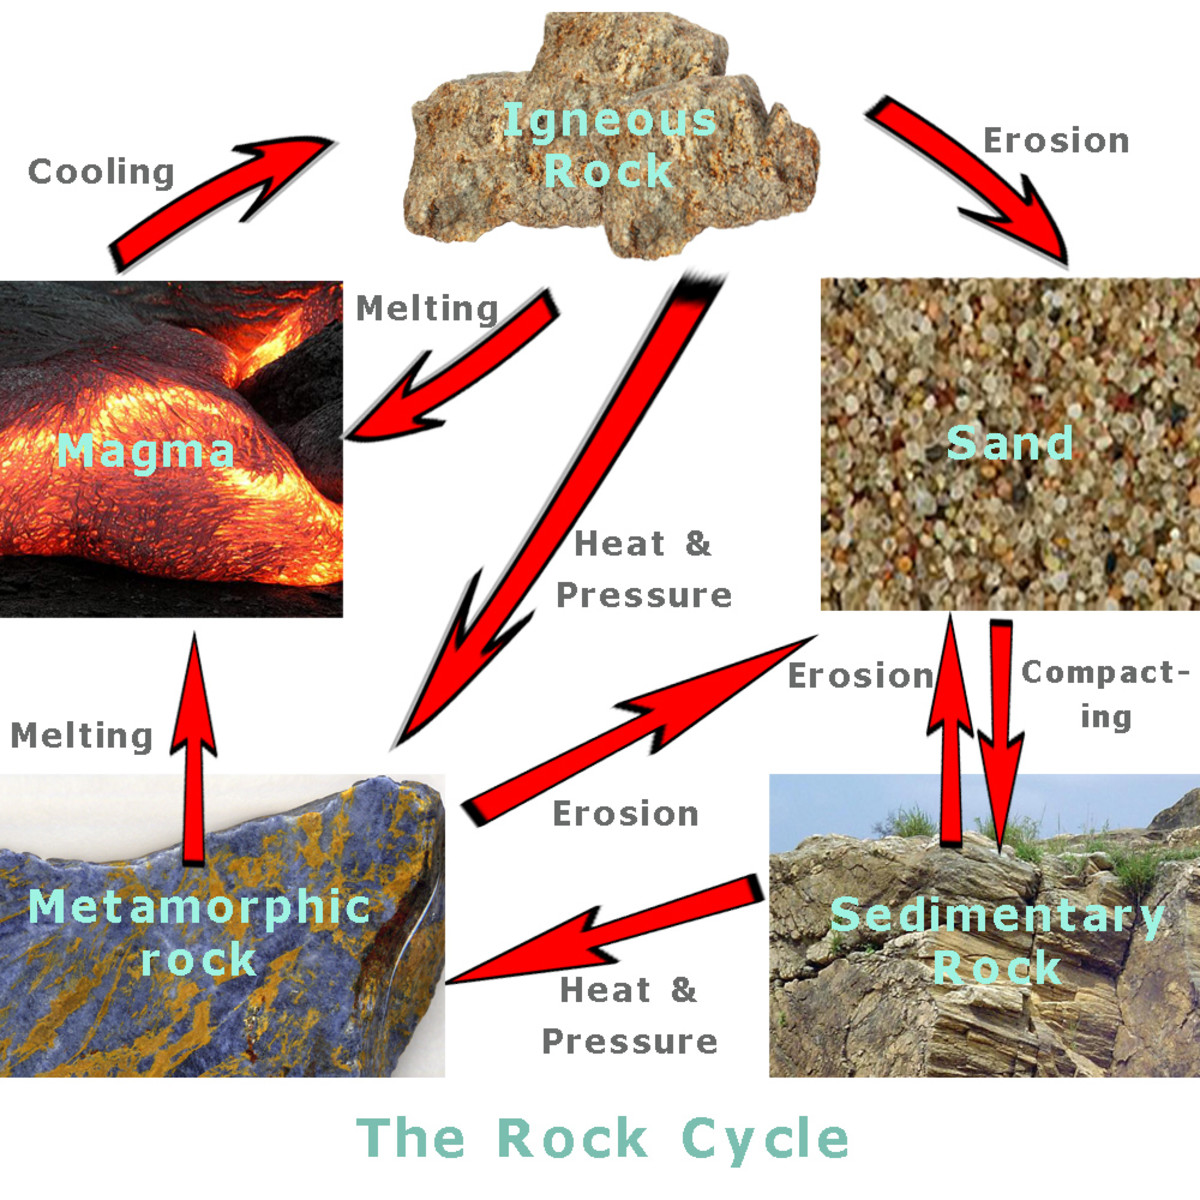 The rock cycle: how erosion, heat and pressure transform rocks.